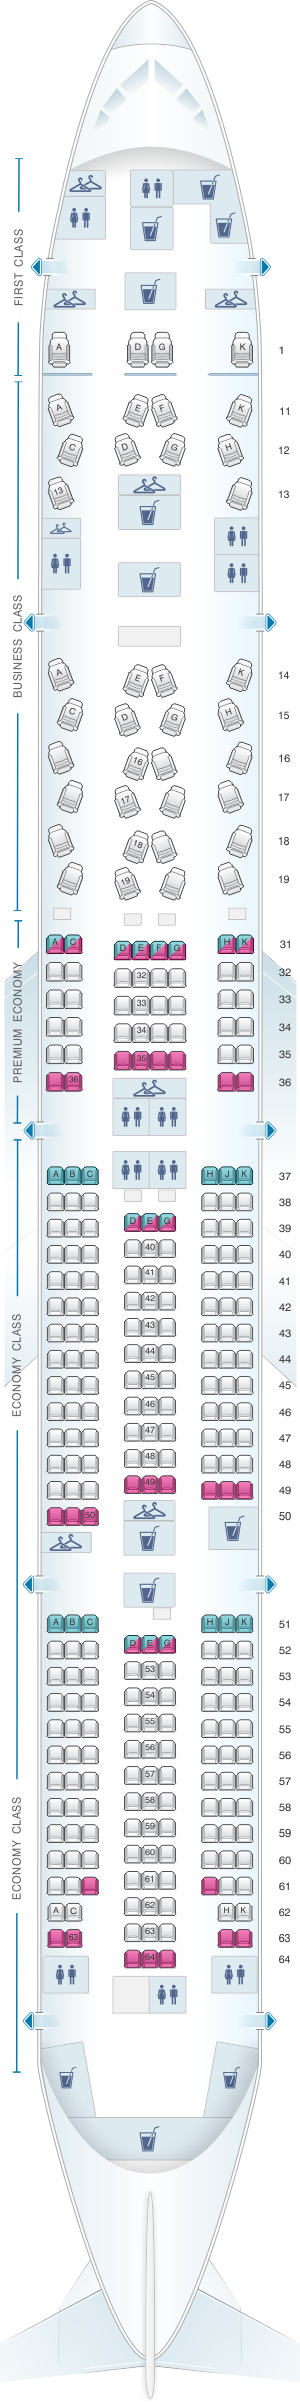 Seat map for China Southern Airlines Boeing B77W